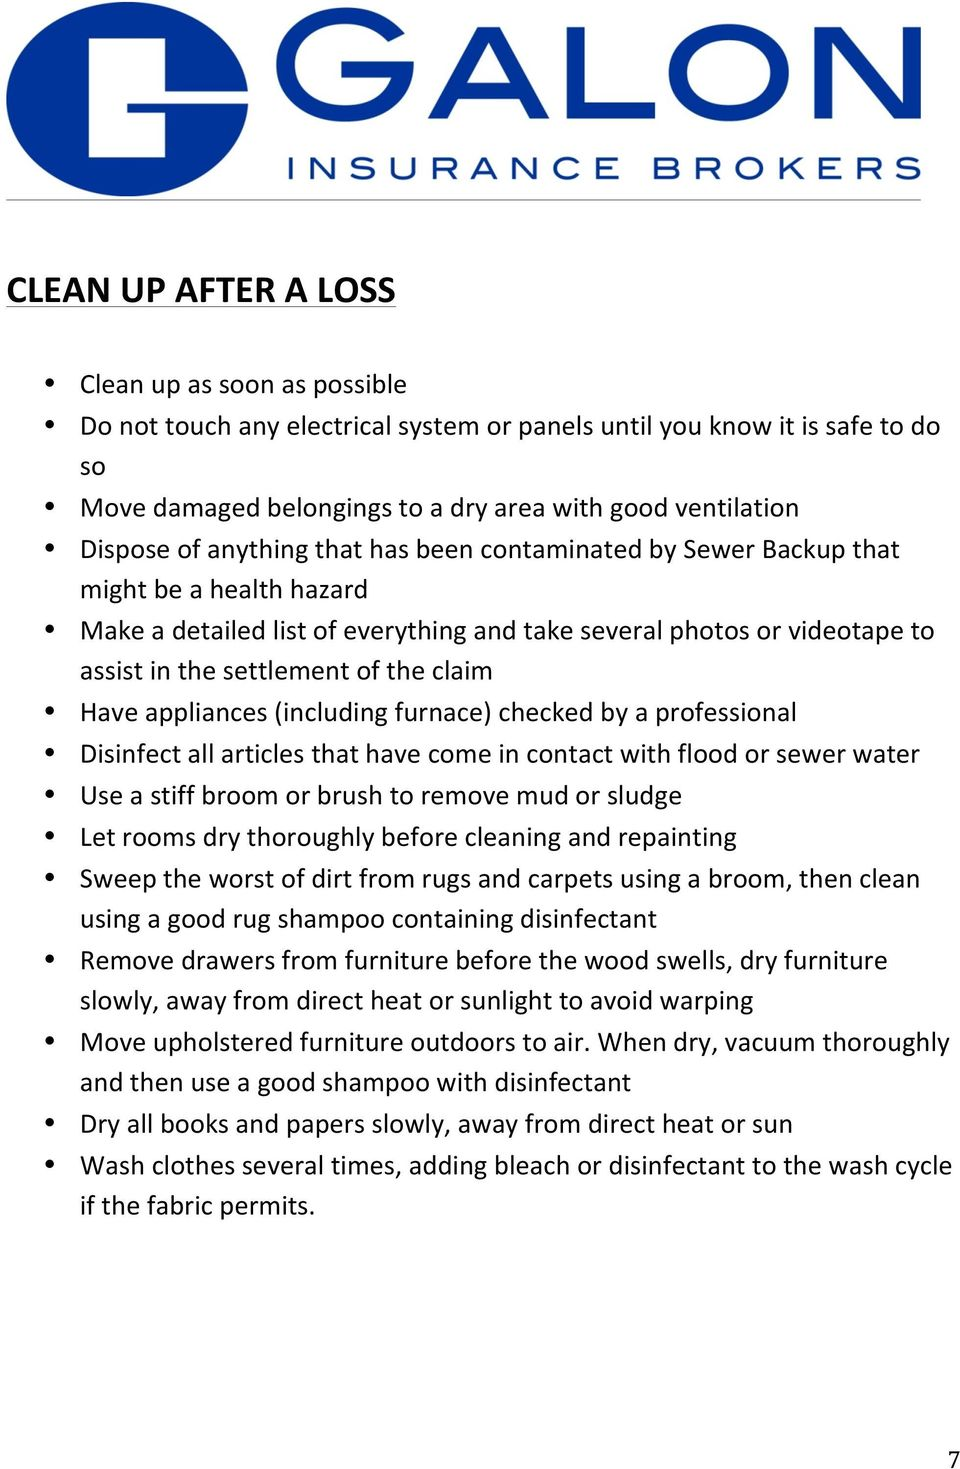 Have appliances (including furnace) checked by a professional Disinfect all articles that have come in contact with flood or sewer water Use a stiff broom or brush to remove mud or sludge Let rooms